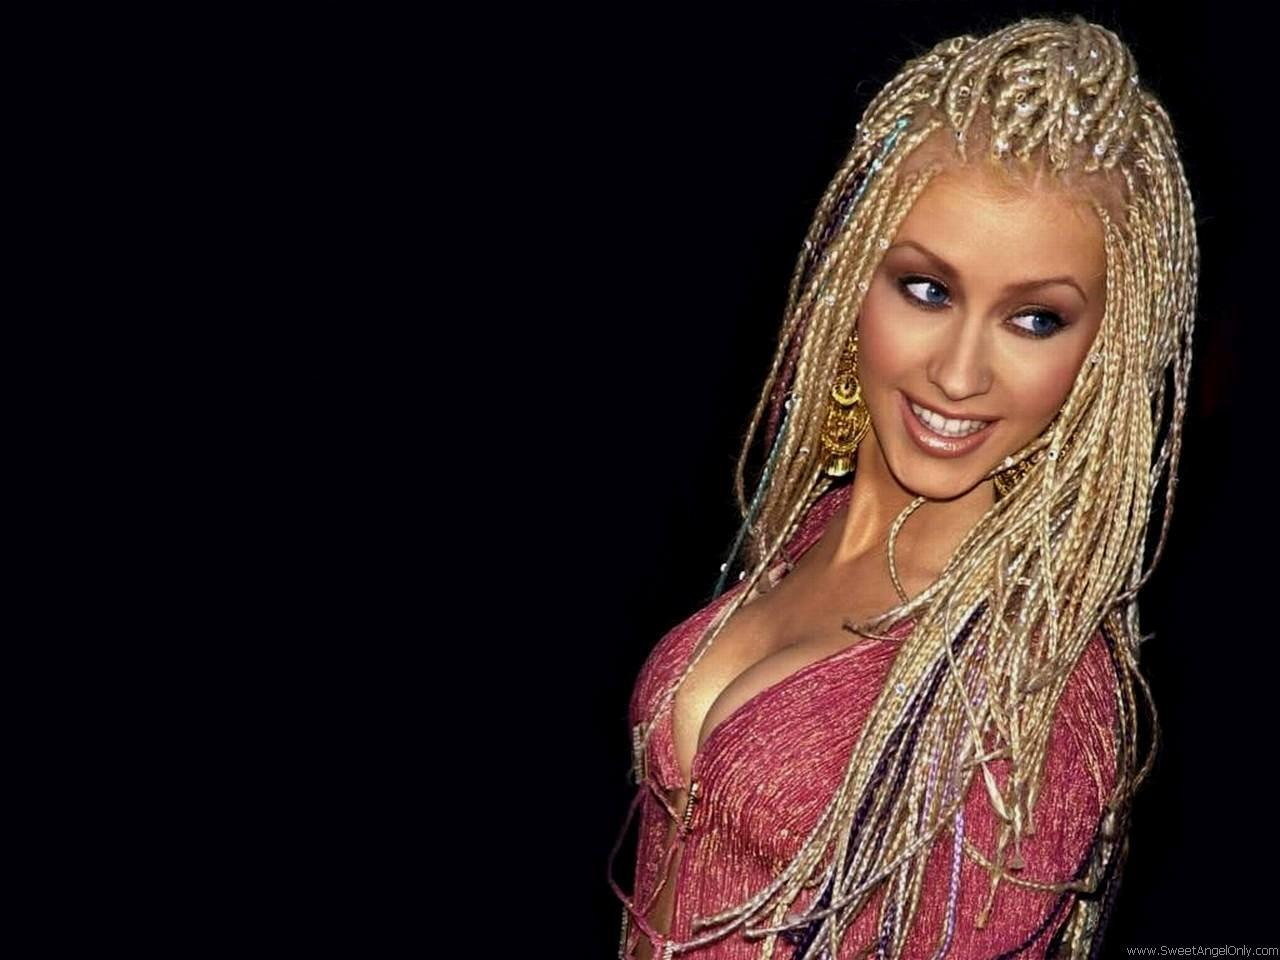 Christina Aguilera Click on the Image for Larger View 1280x960